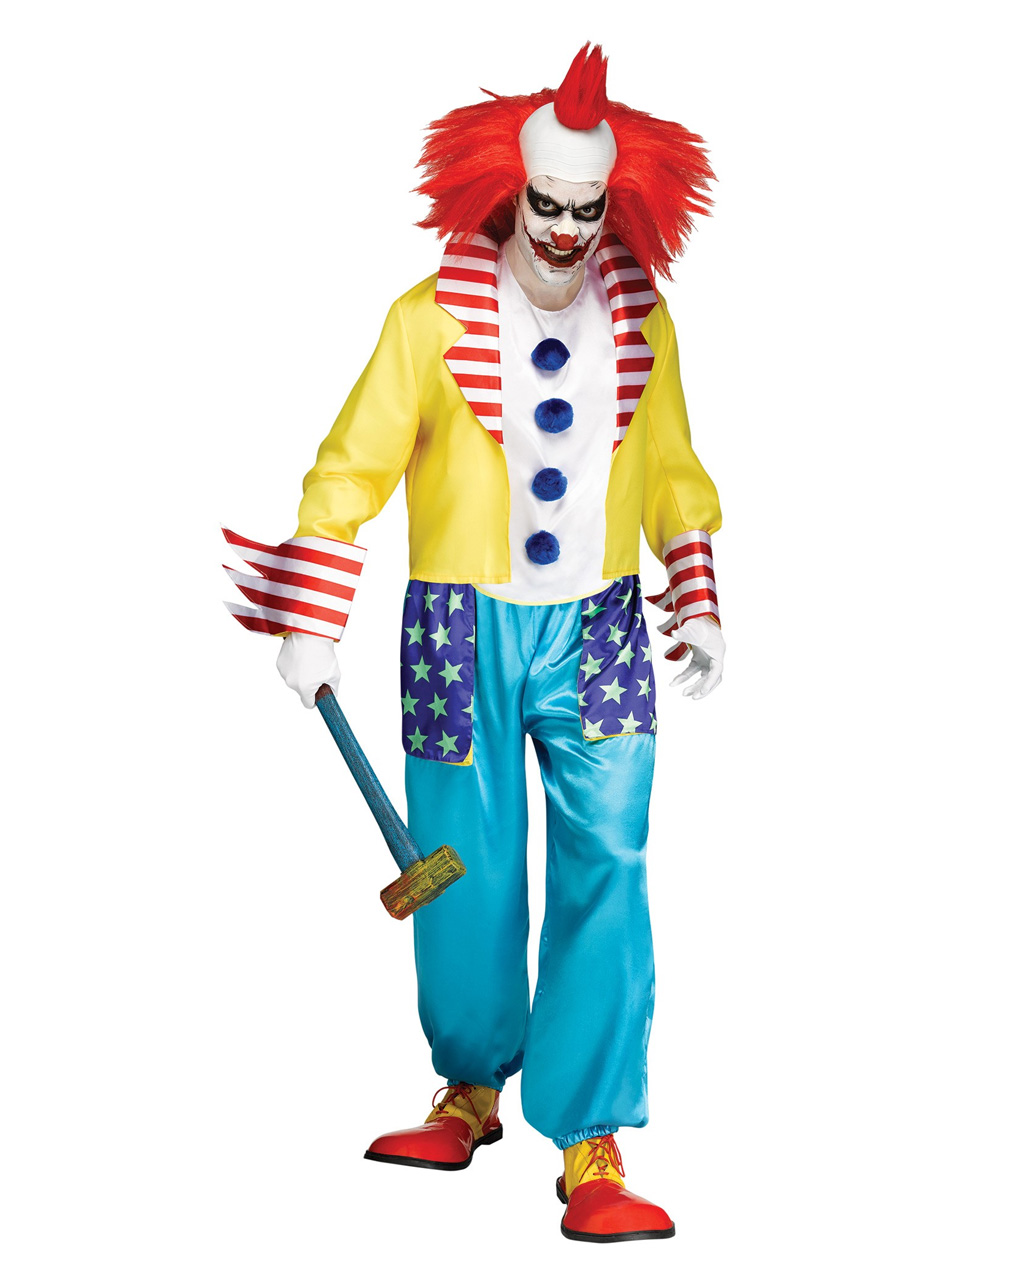 wicked clown halloween costume for horror parties horror. Black Bedroom Furniture Sets. Home Design Ideas